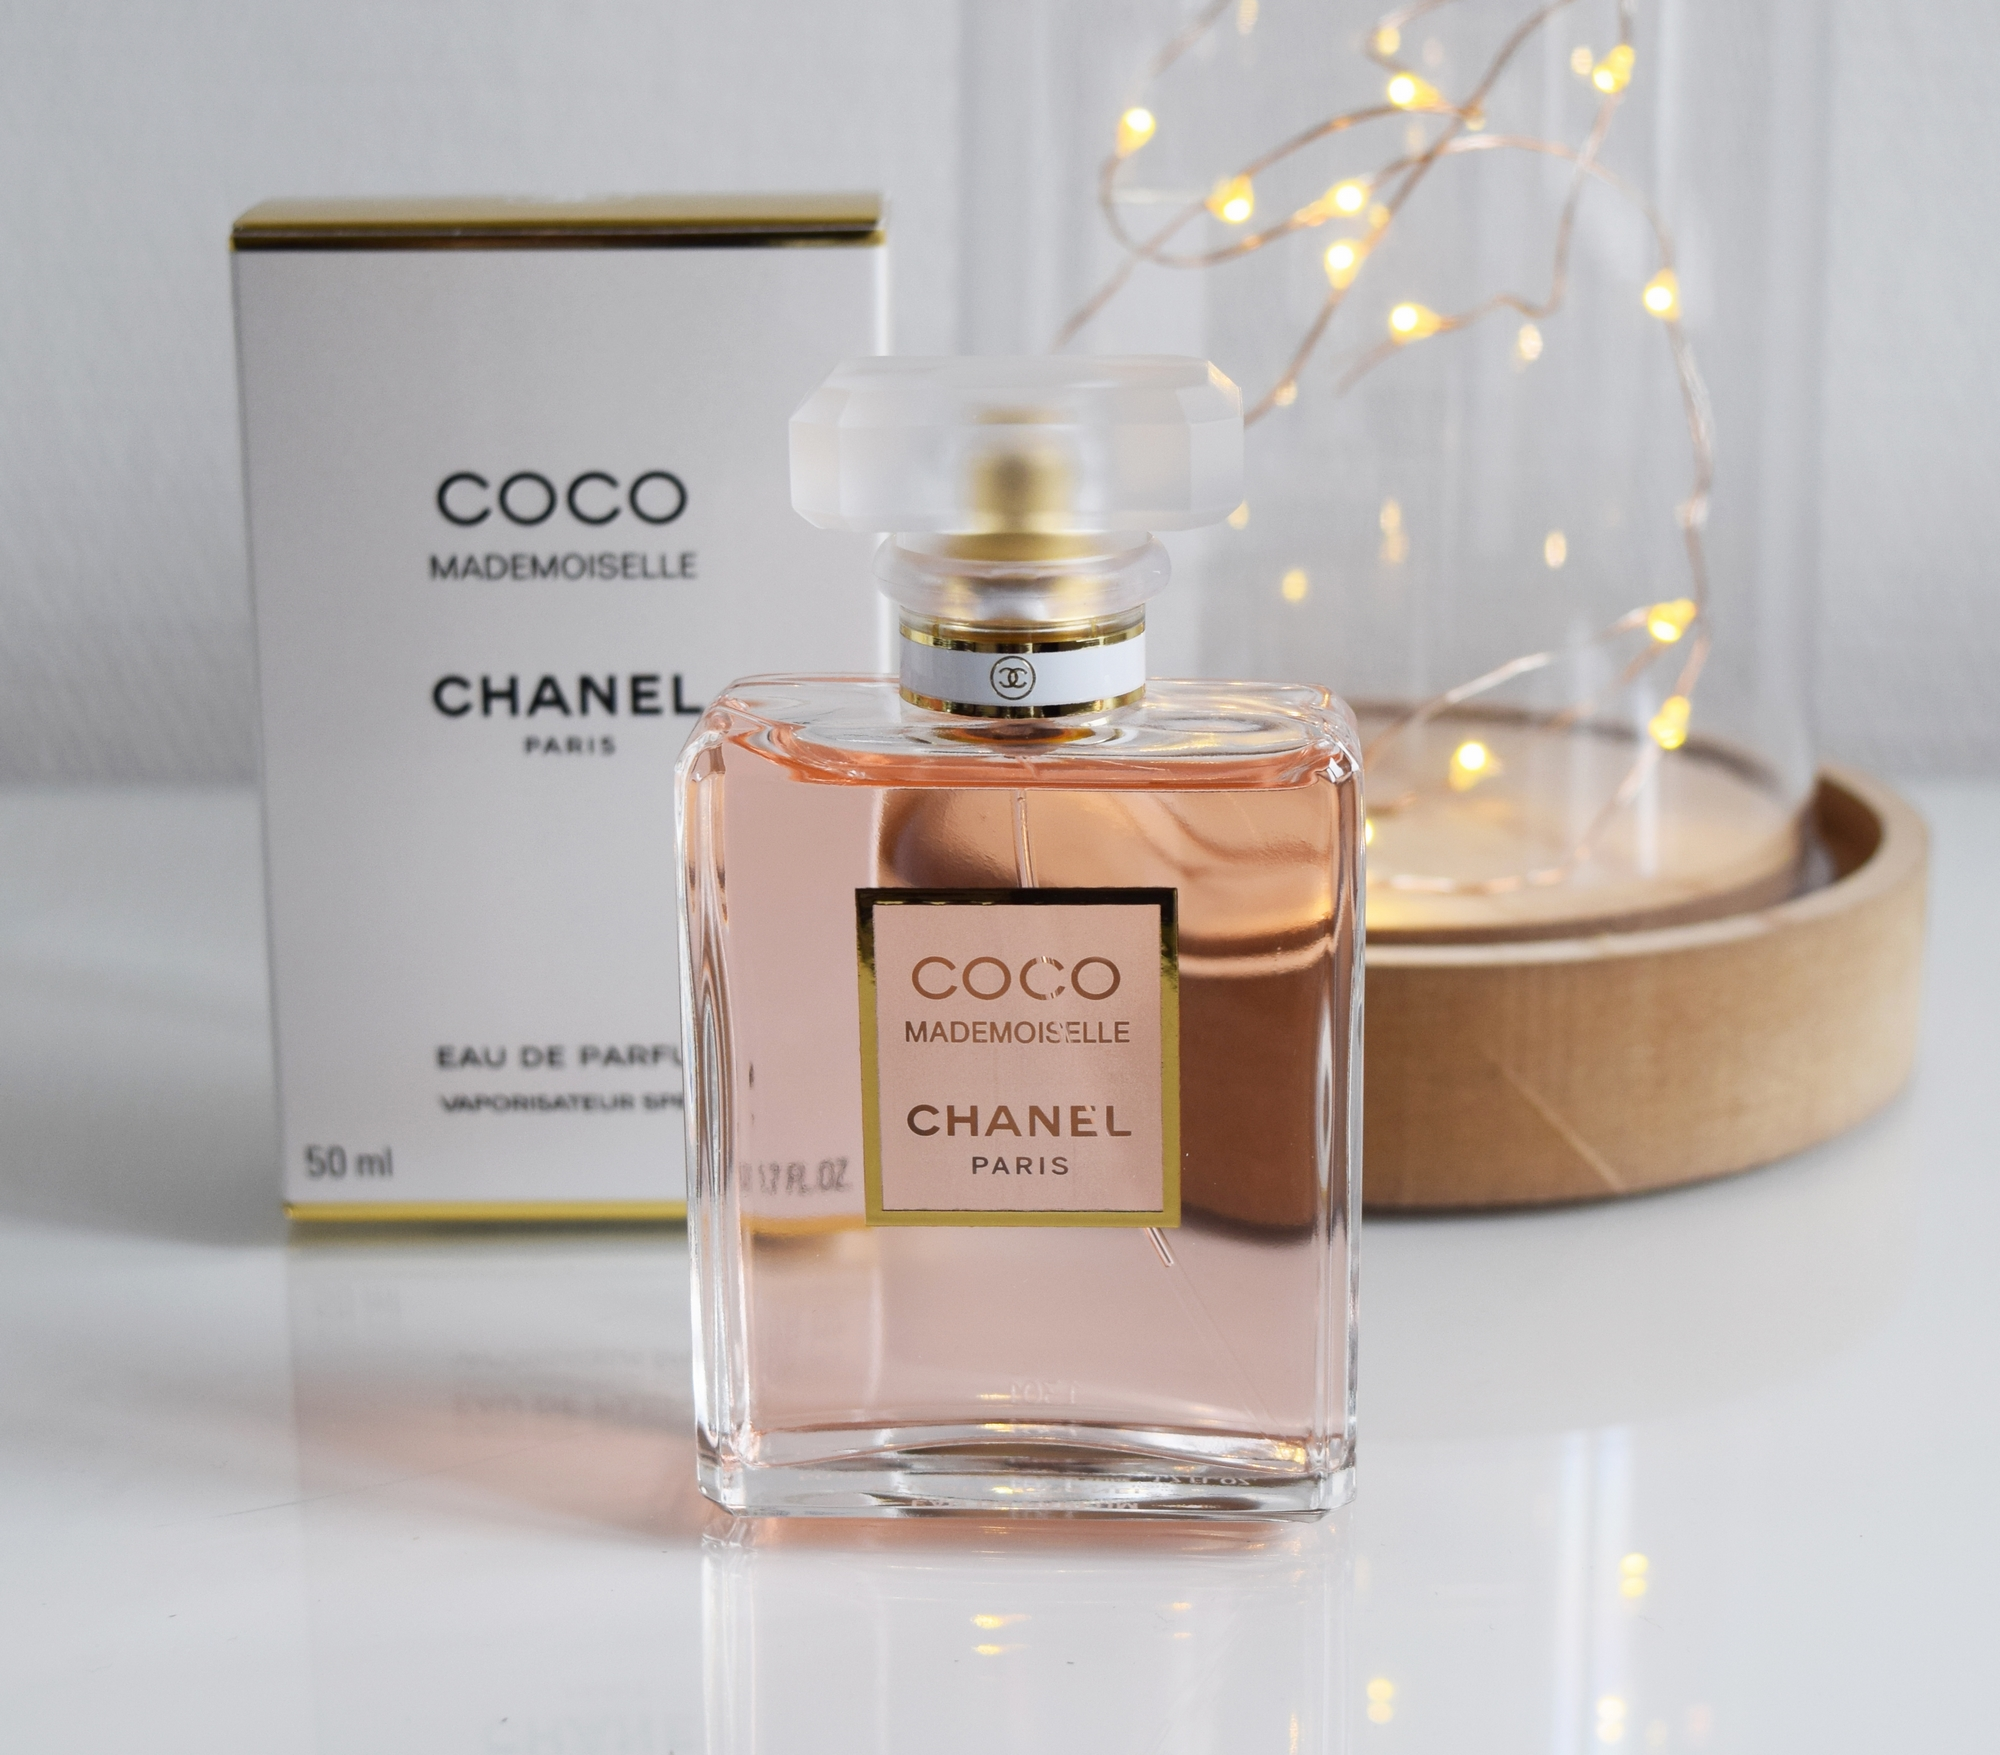 d5e9e80721 L'incontournable parfum Coco Mademoiselle de Chanel ! - Purple Dream ...